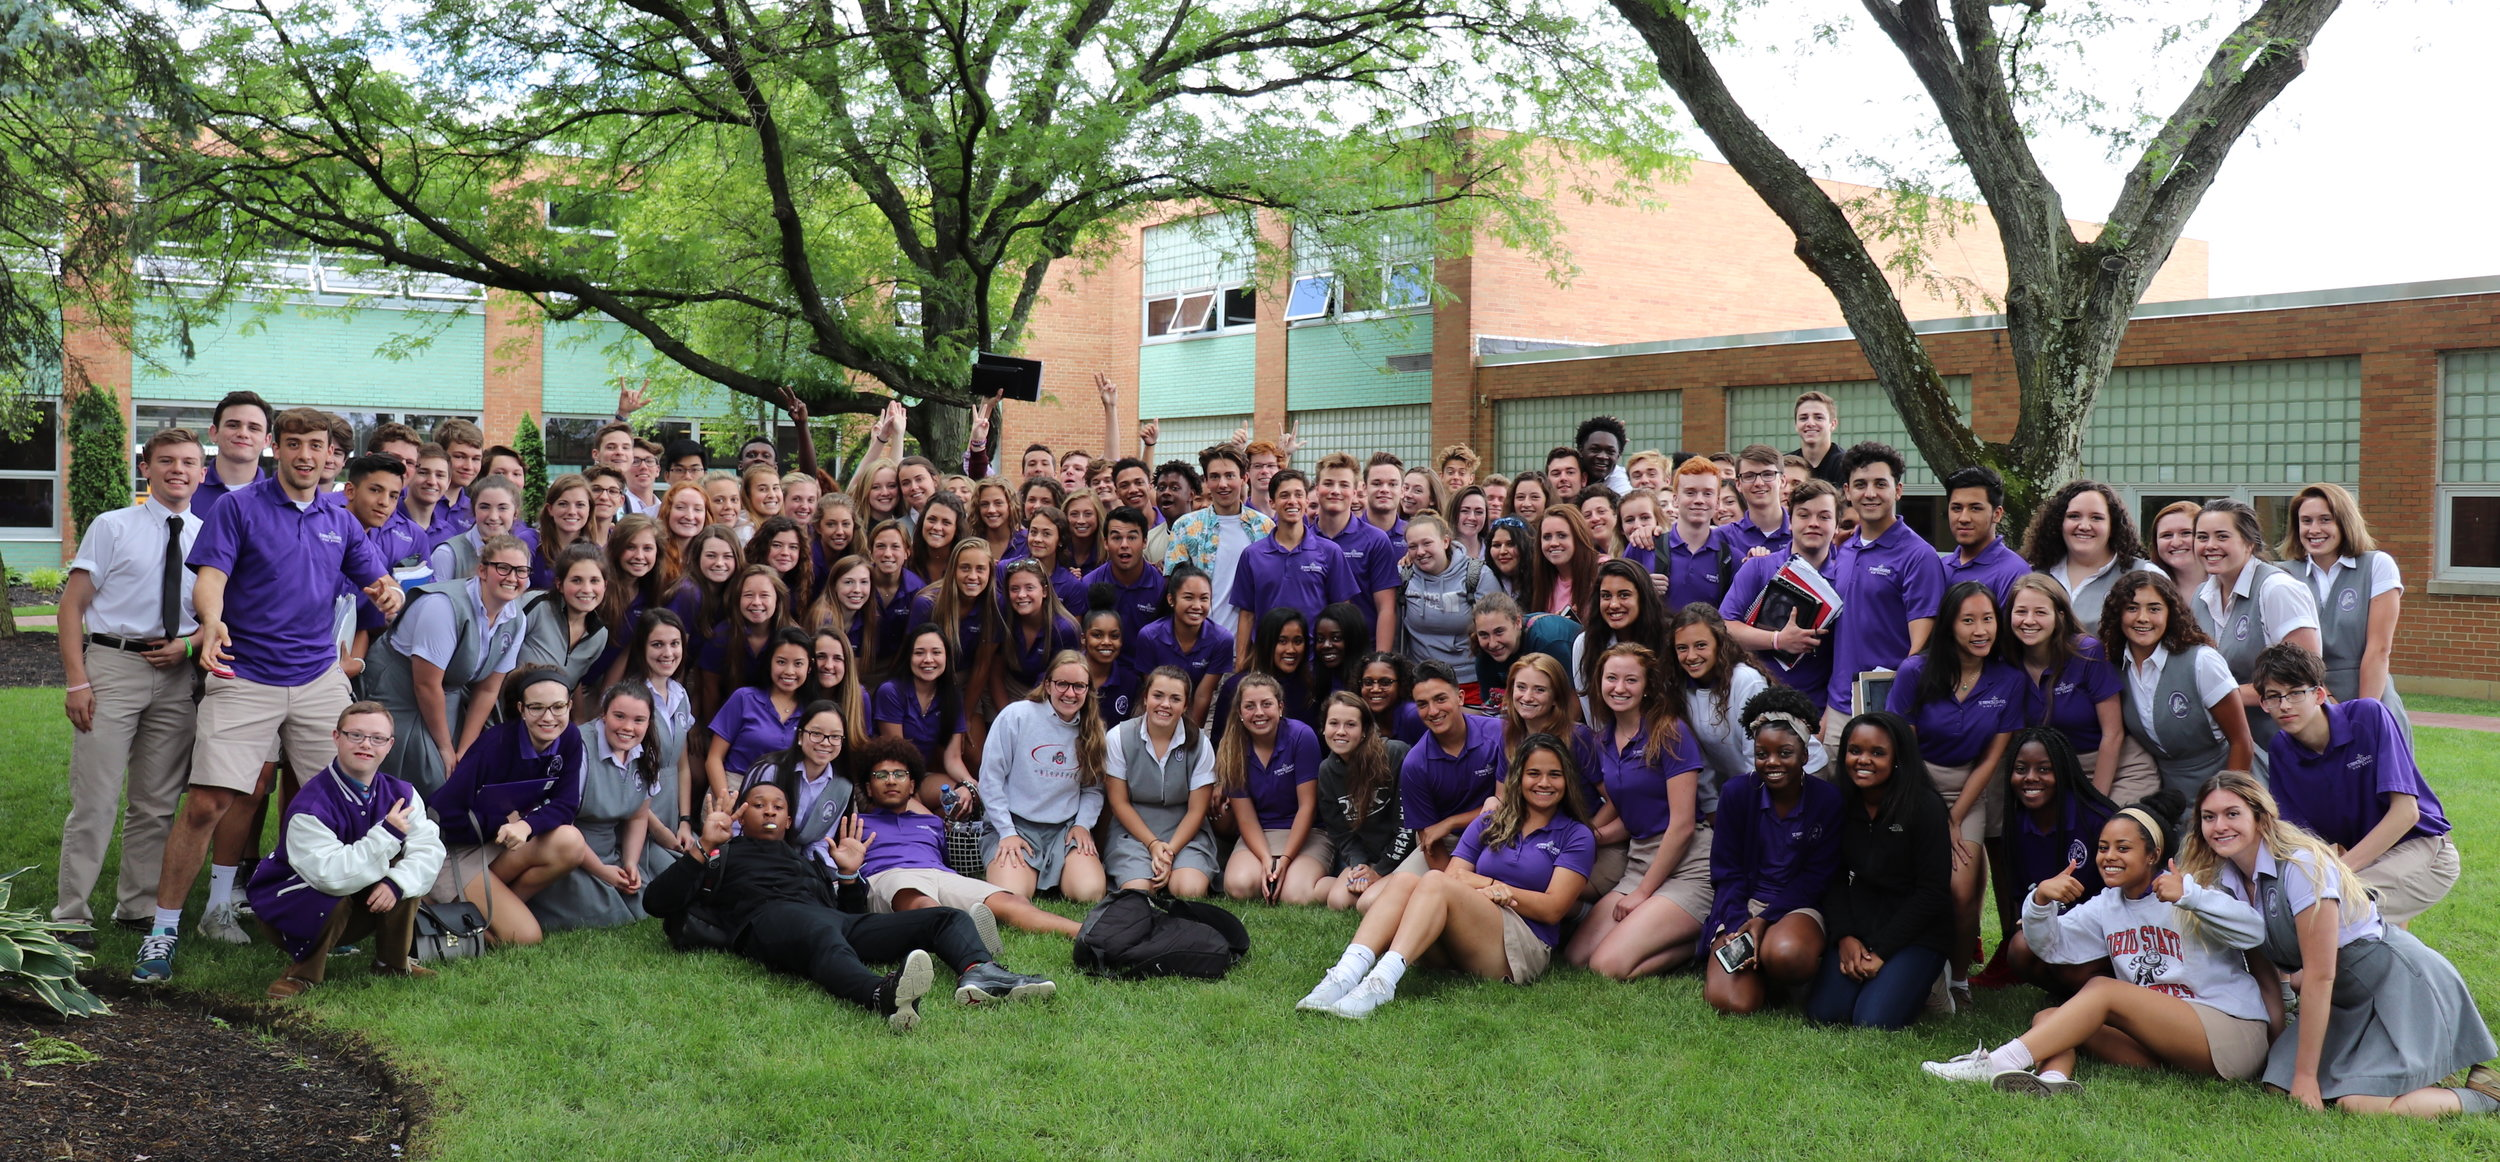 The Class of 2019 in Senior Courtyard for the first time - June, 2018